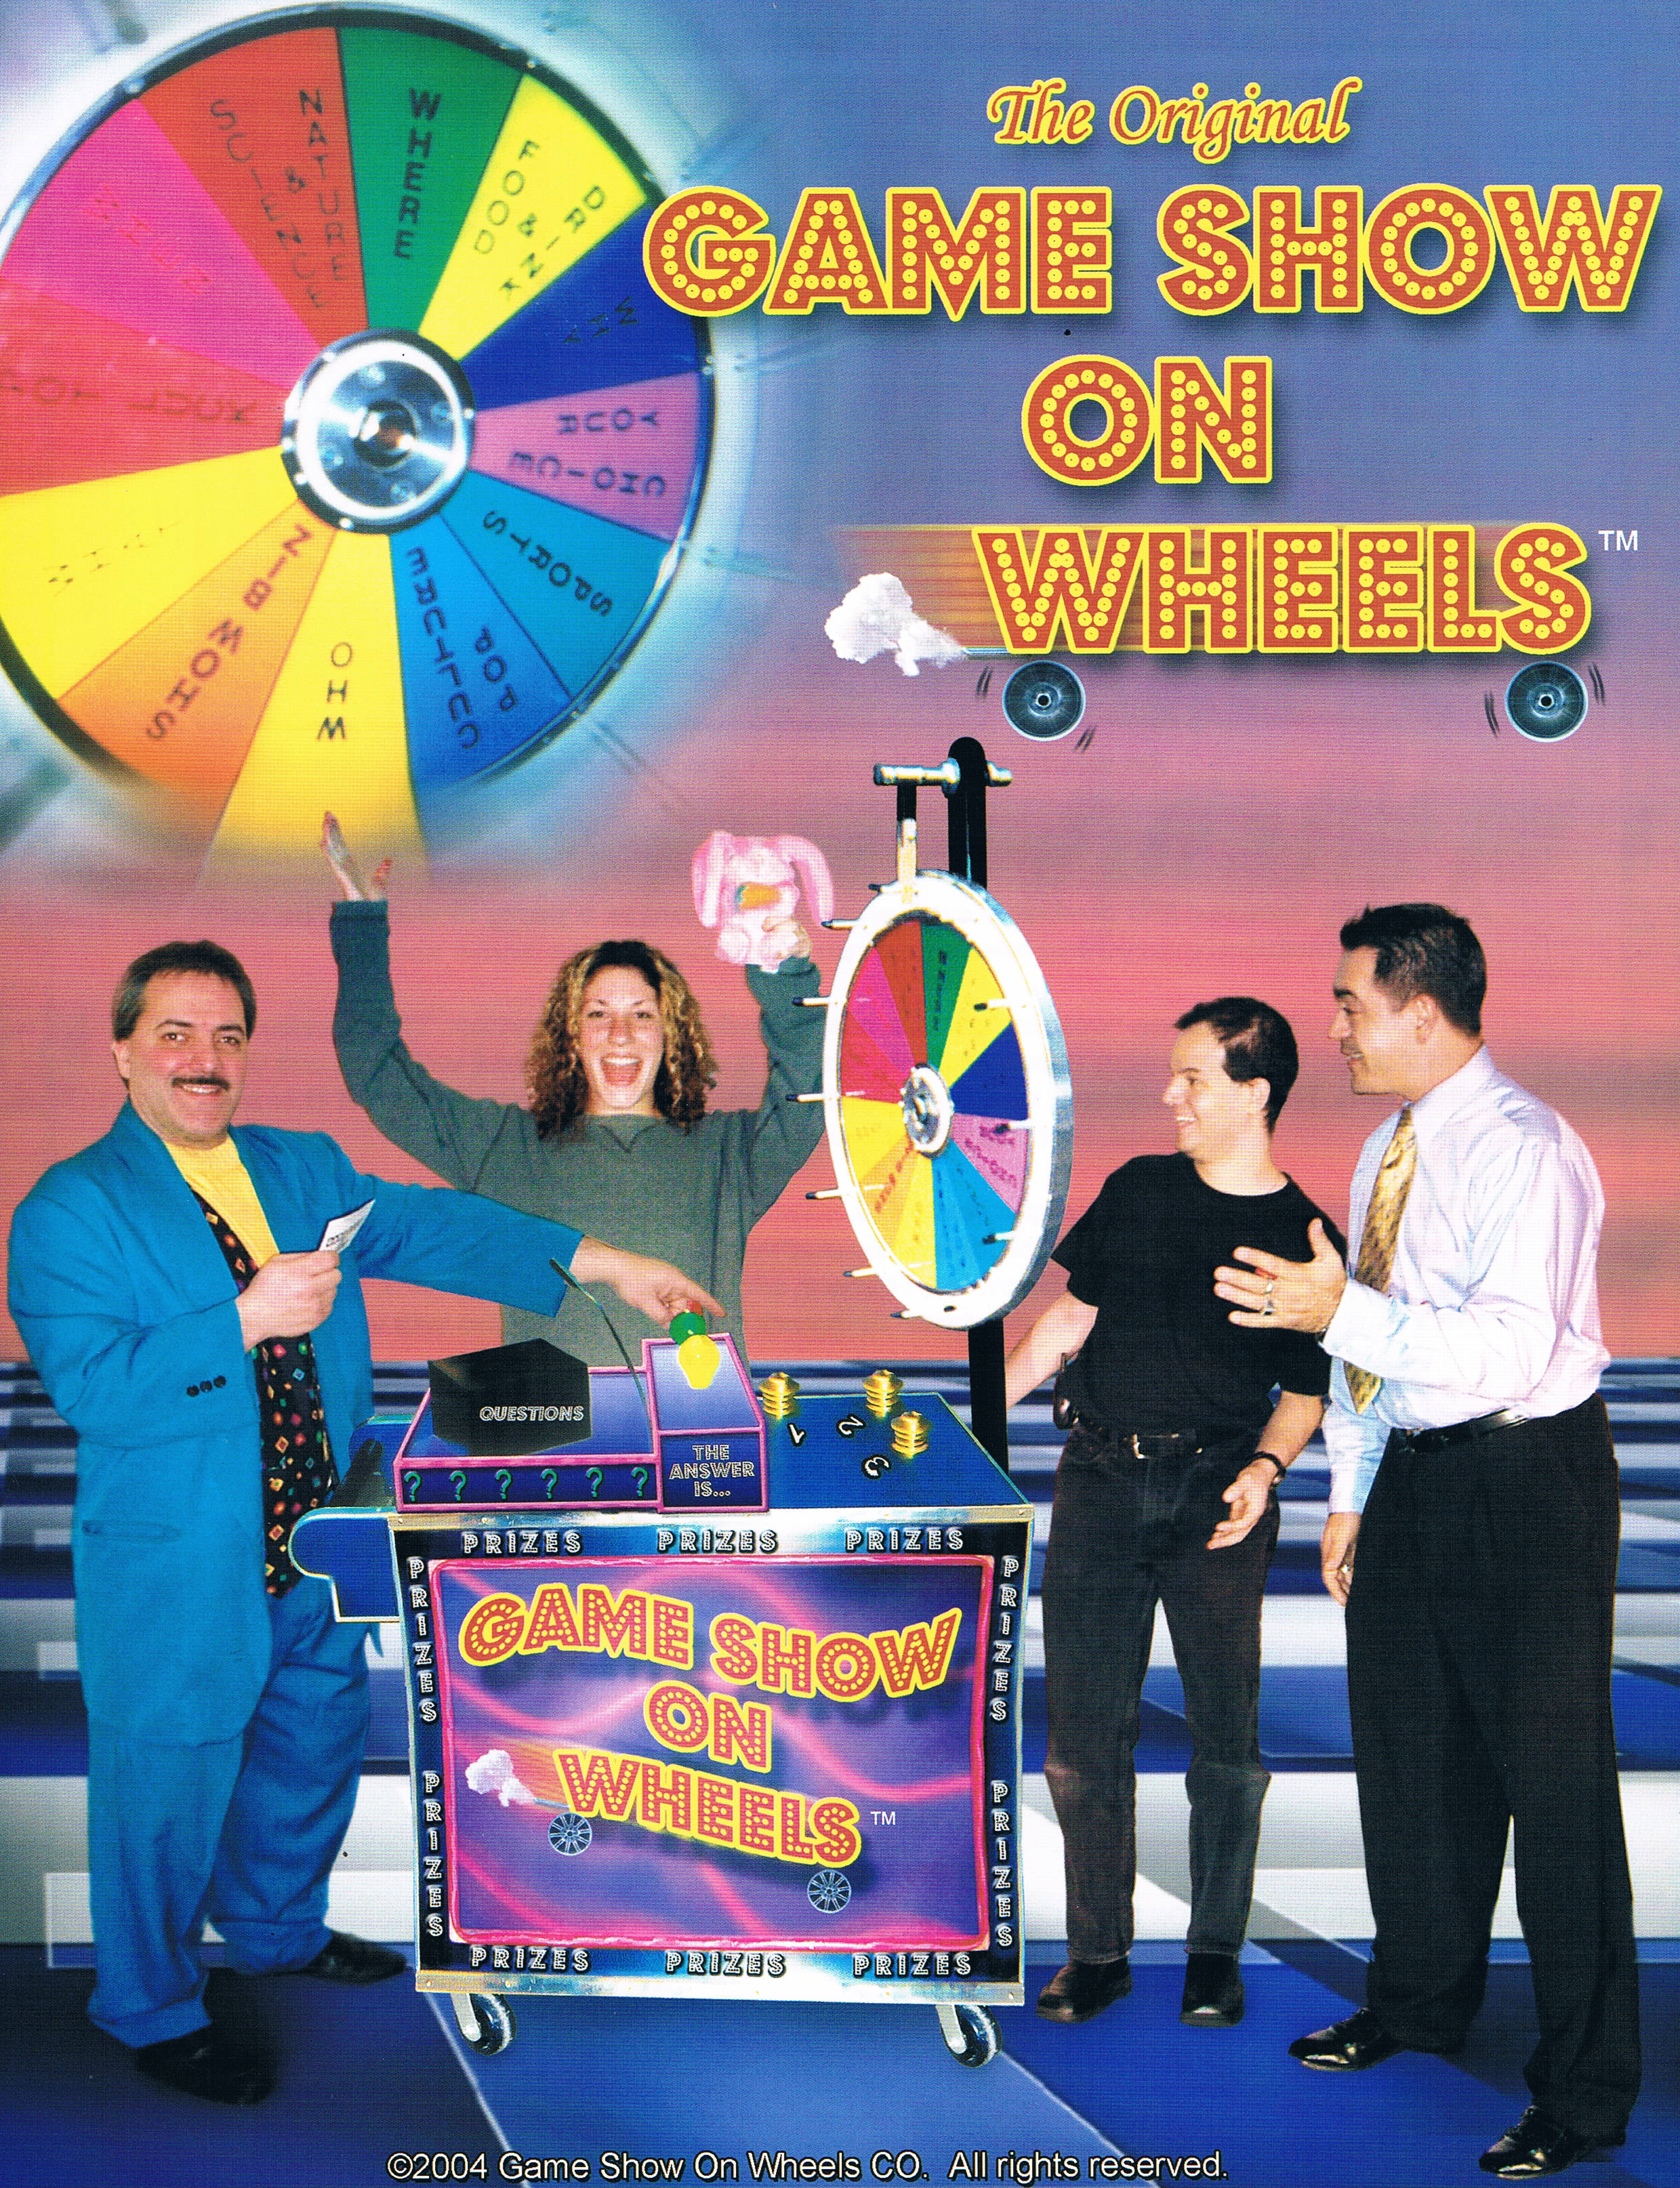 Game Show on Wheels